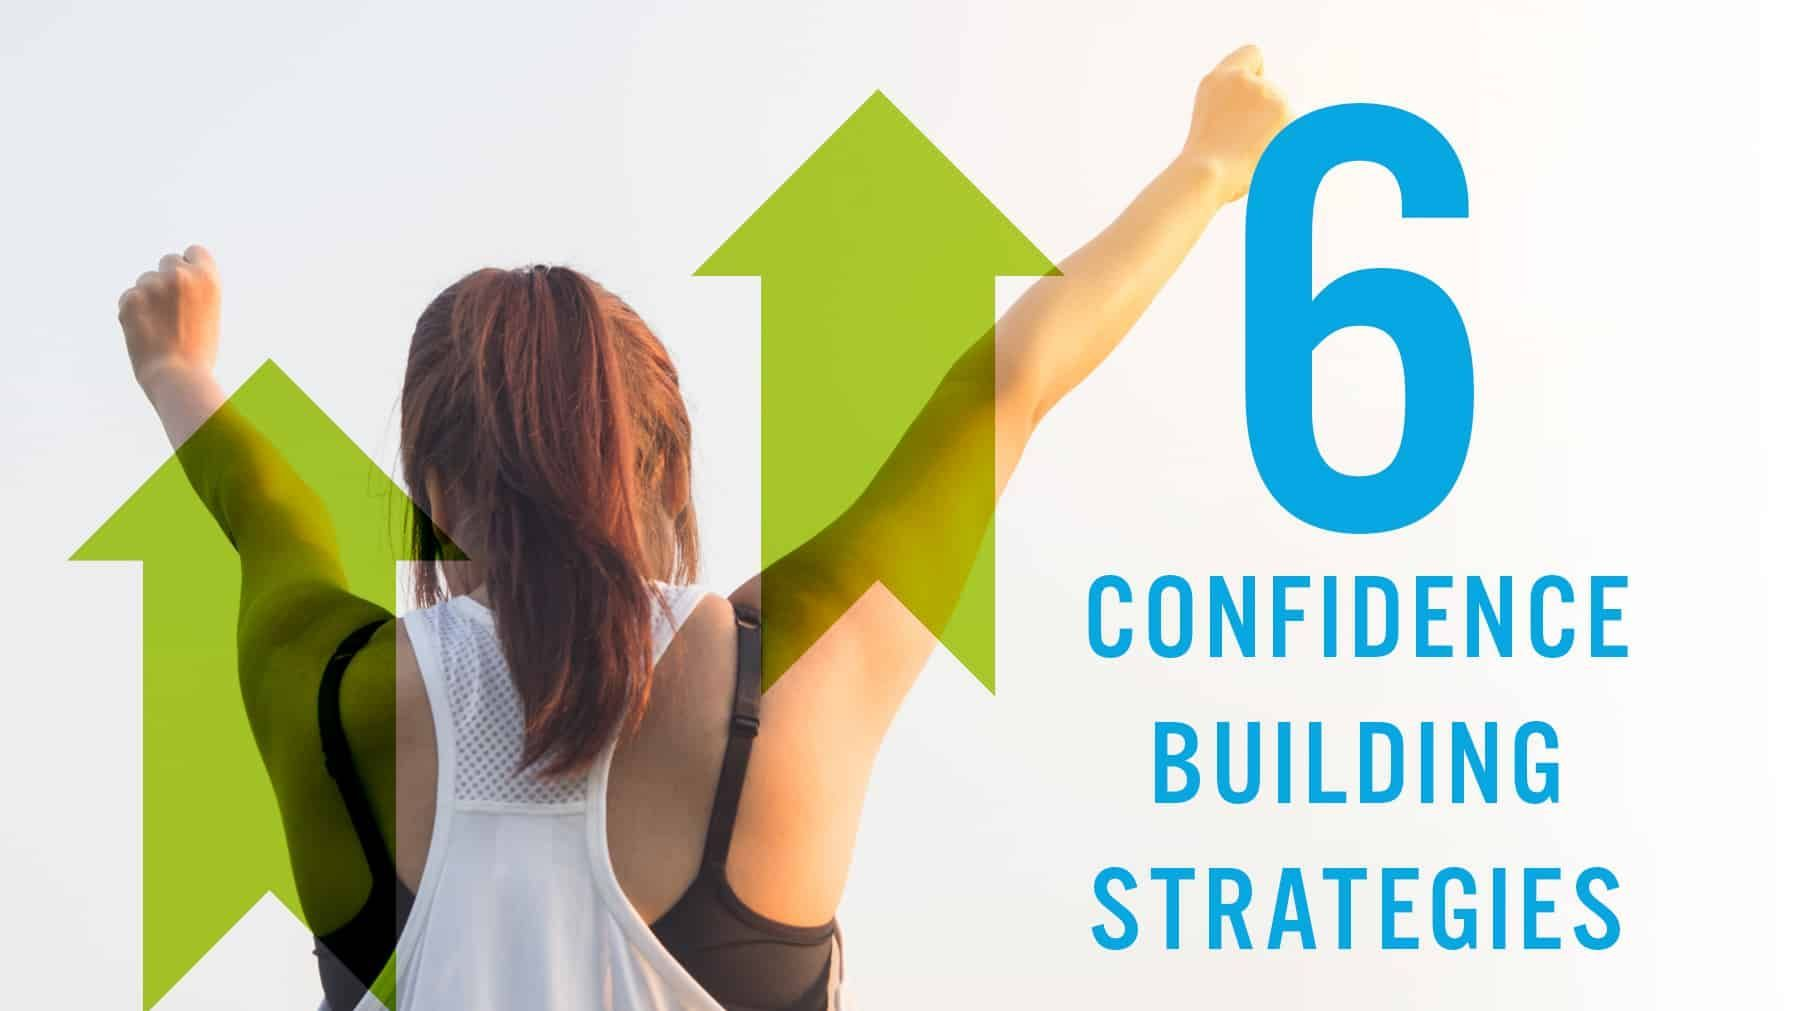 6 Confidence Building Strategies The Art Of Coaching Volleyball Coaching Volleyball Confidence Building Coaching